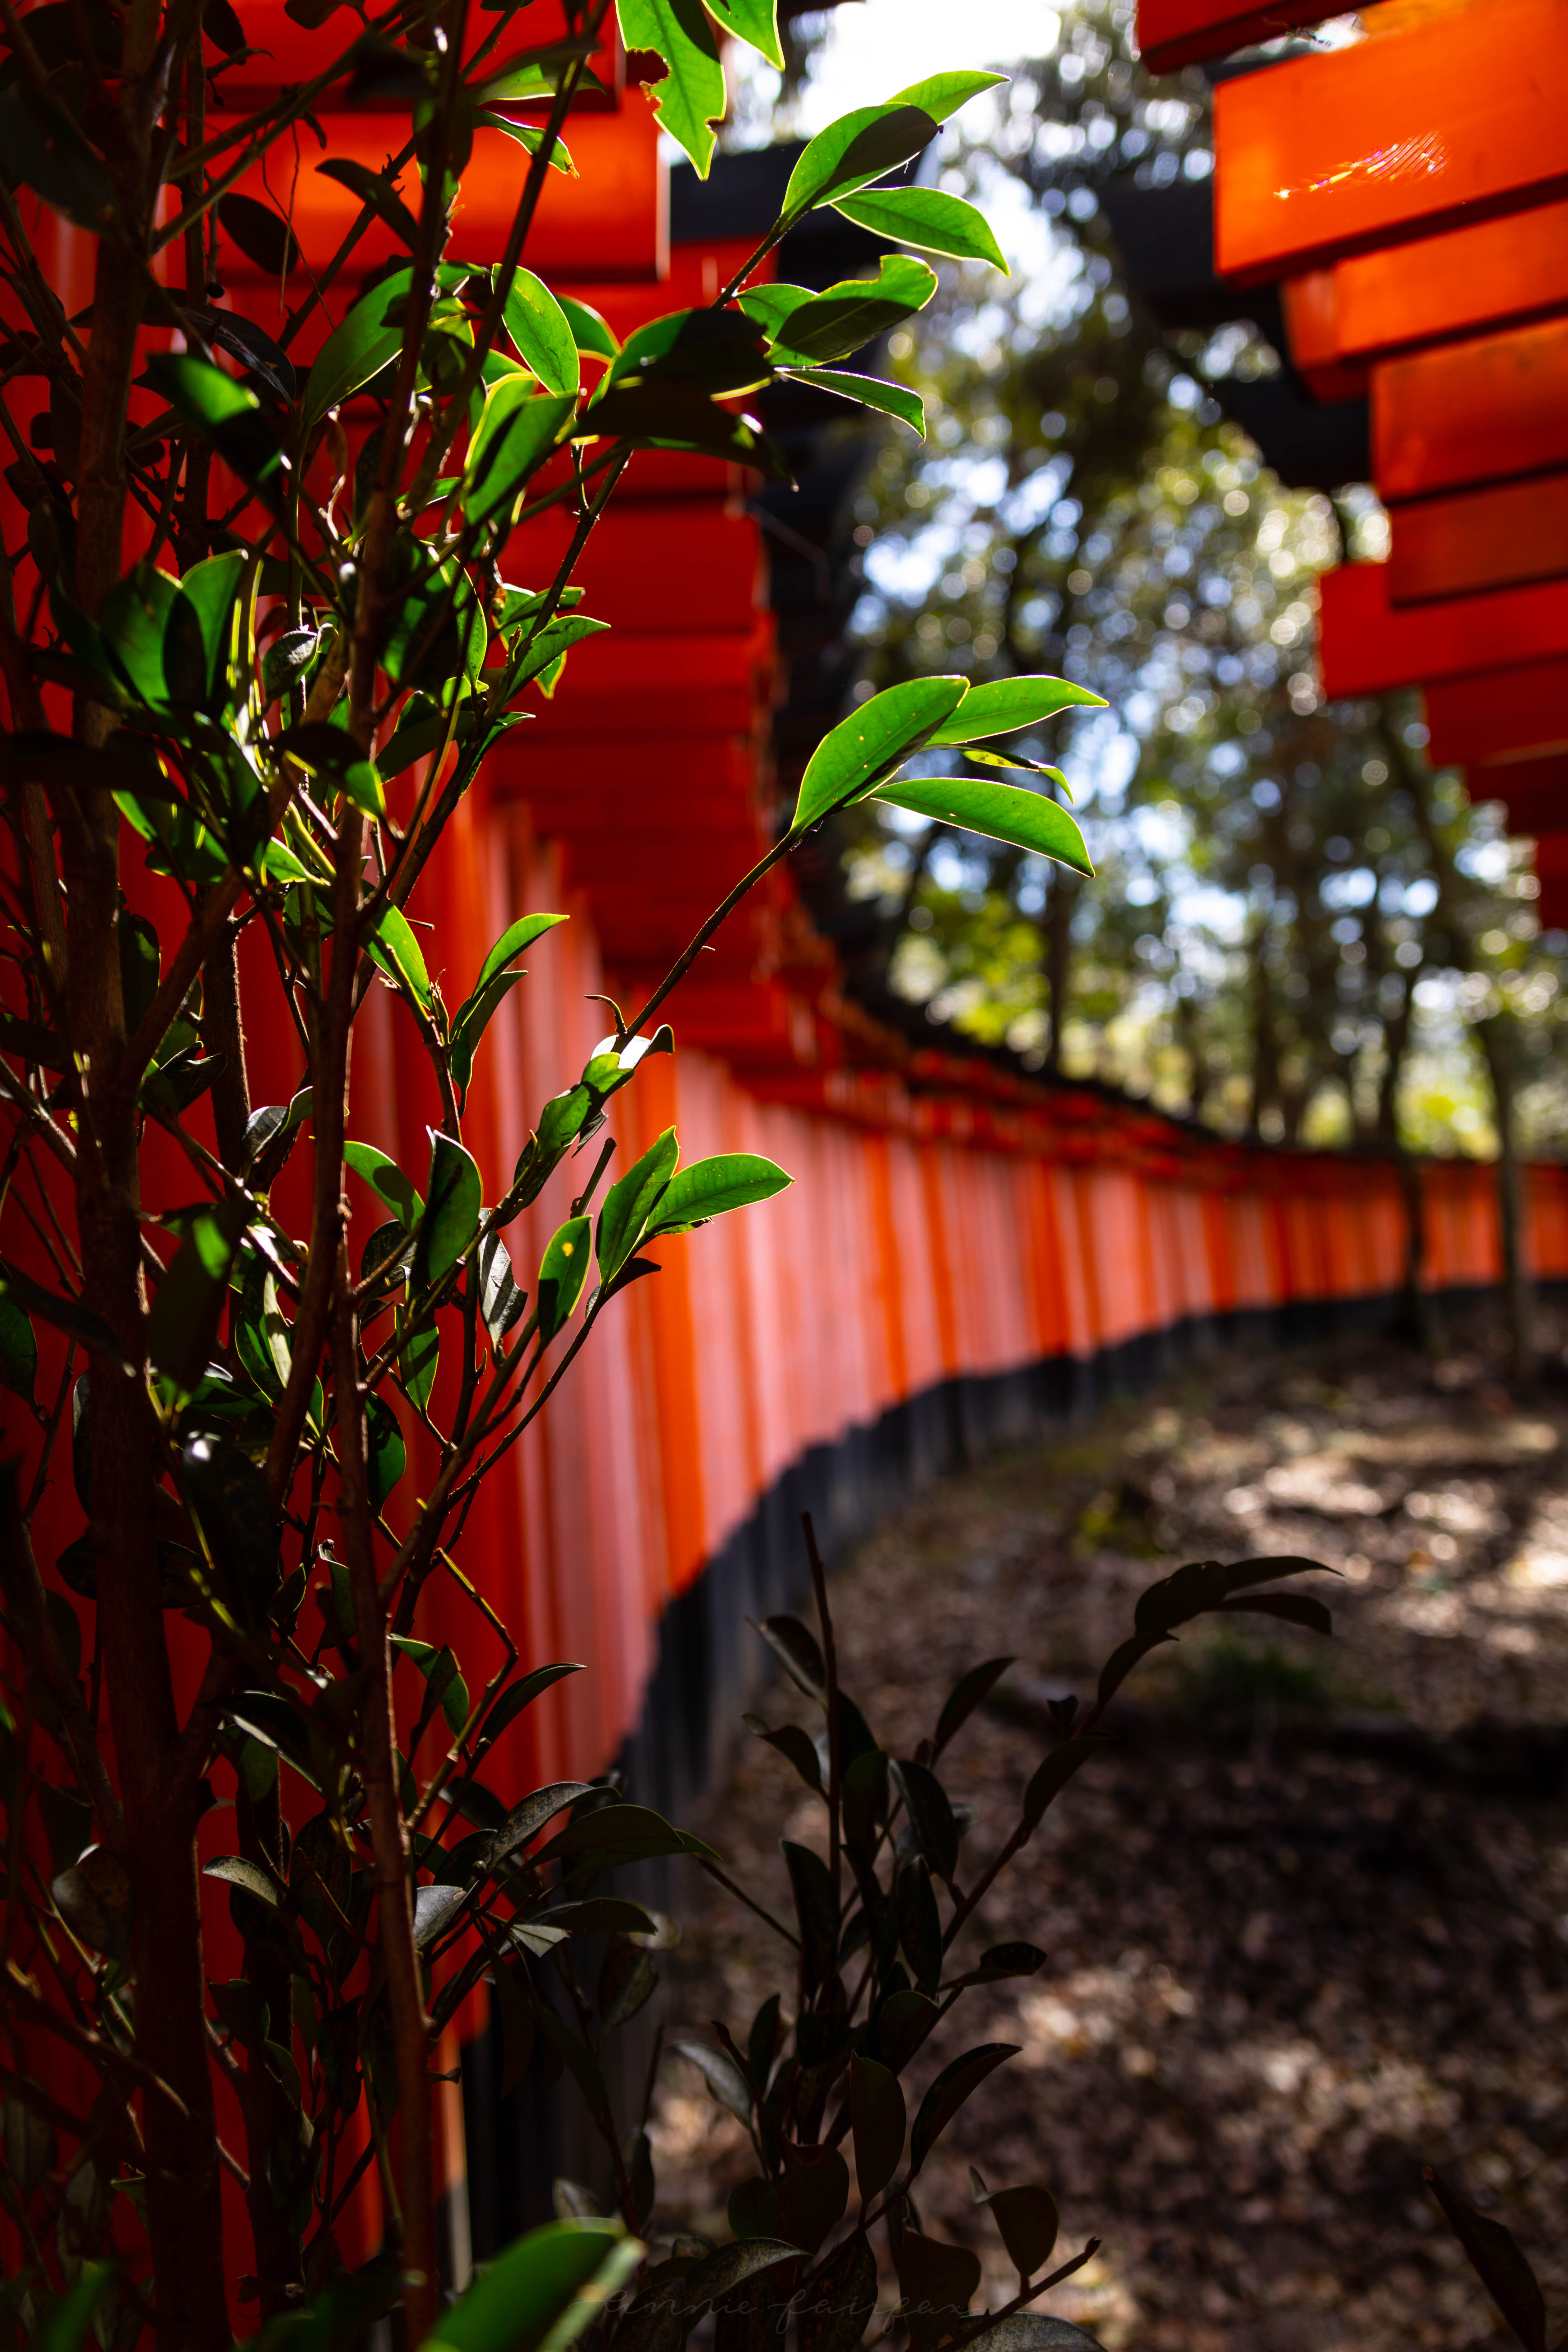 Outside of Lines of Torii Gates at Chozuya Waterr Ablution Purification at Fushimi Inari Taisha Shrine 10,000 Red Vermillion Torii Gates in Kyoto Japan Mt. Inari Hiking Path